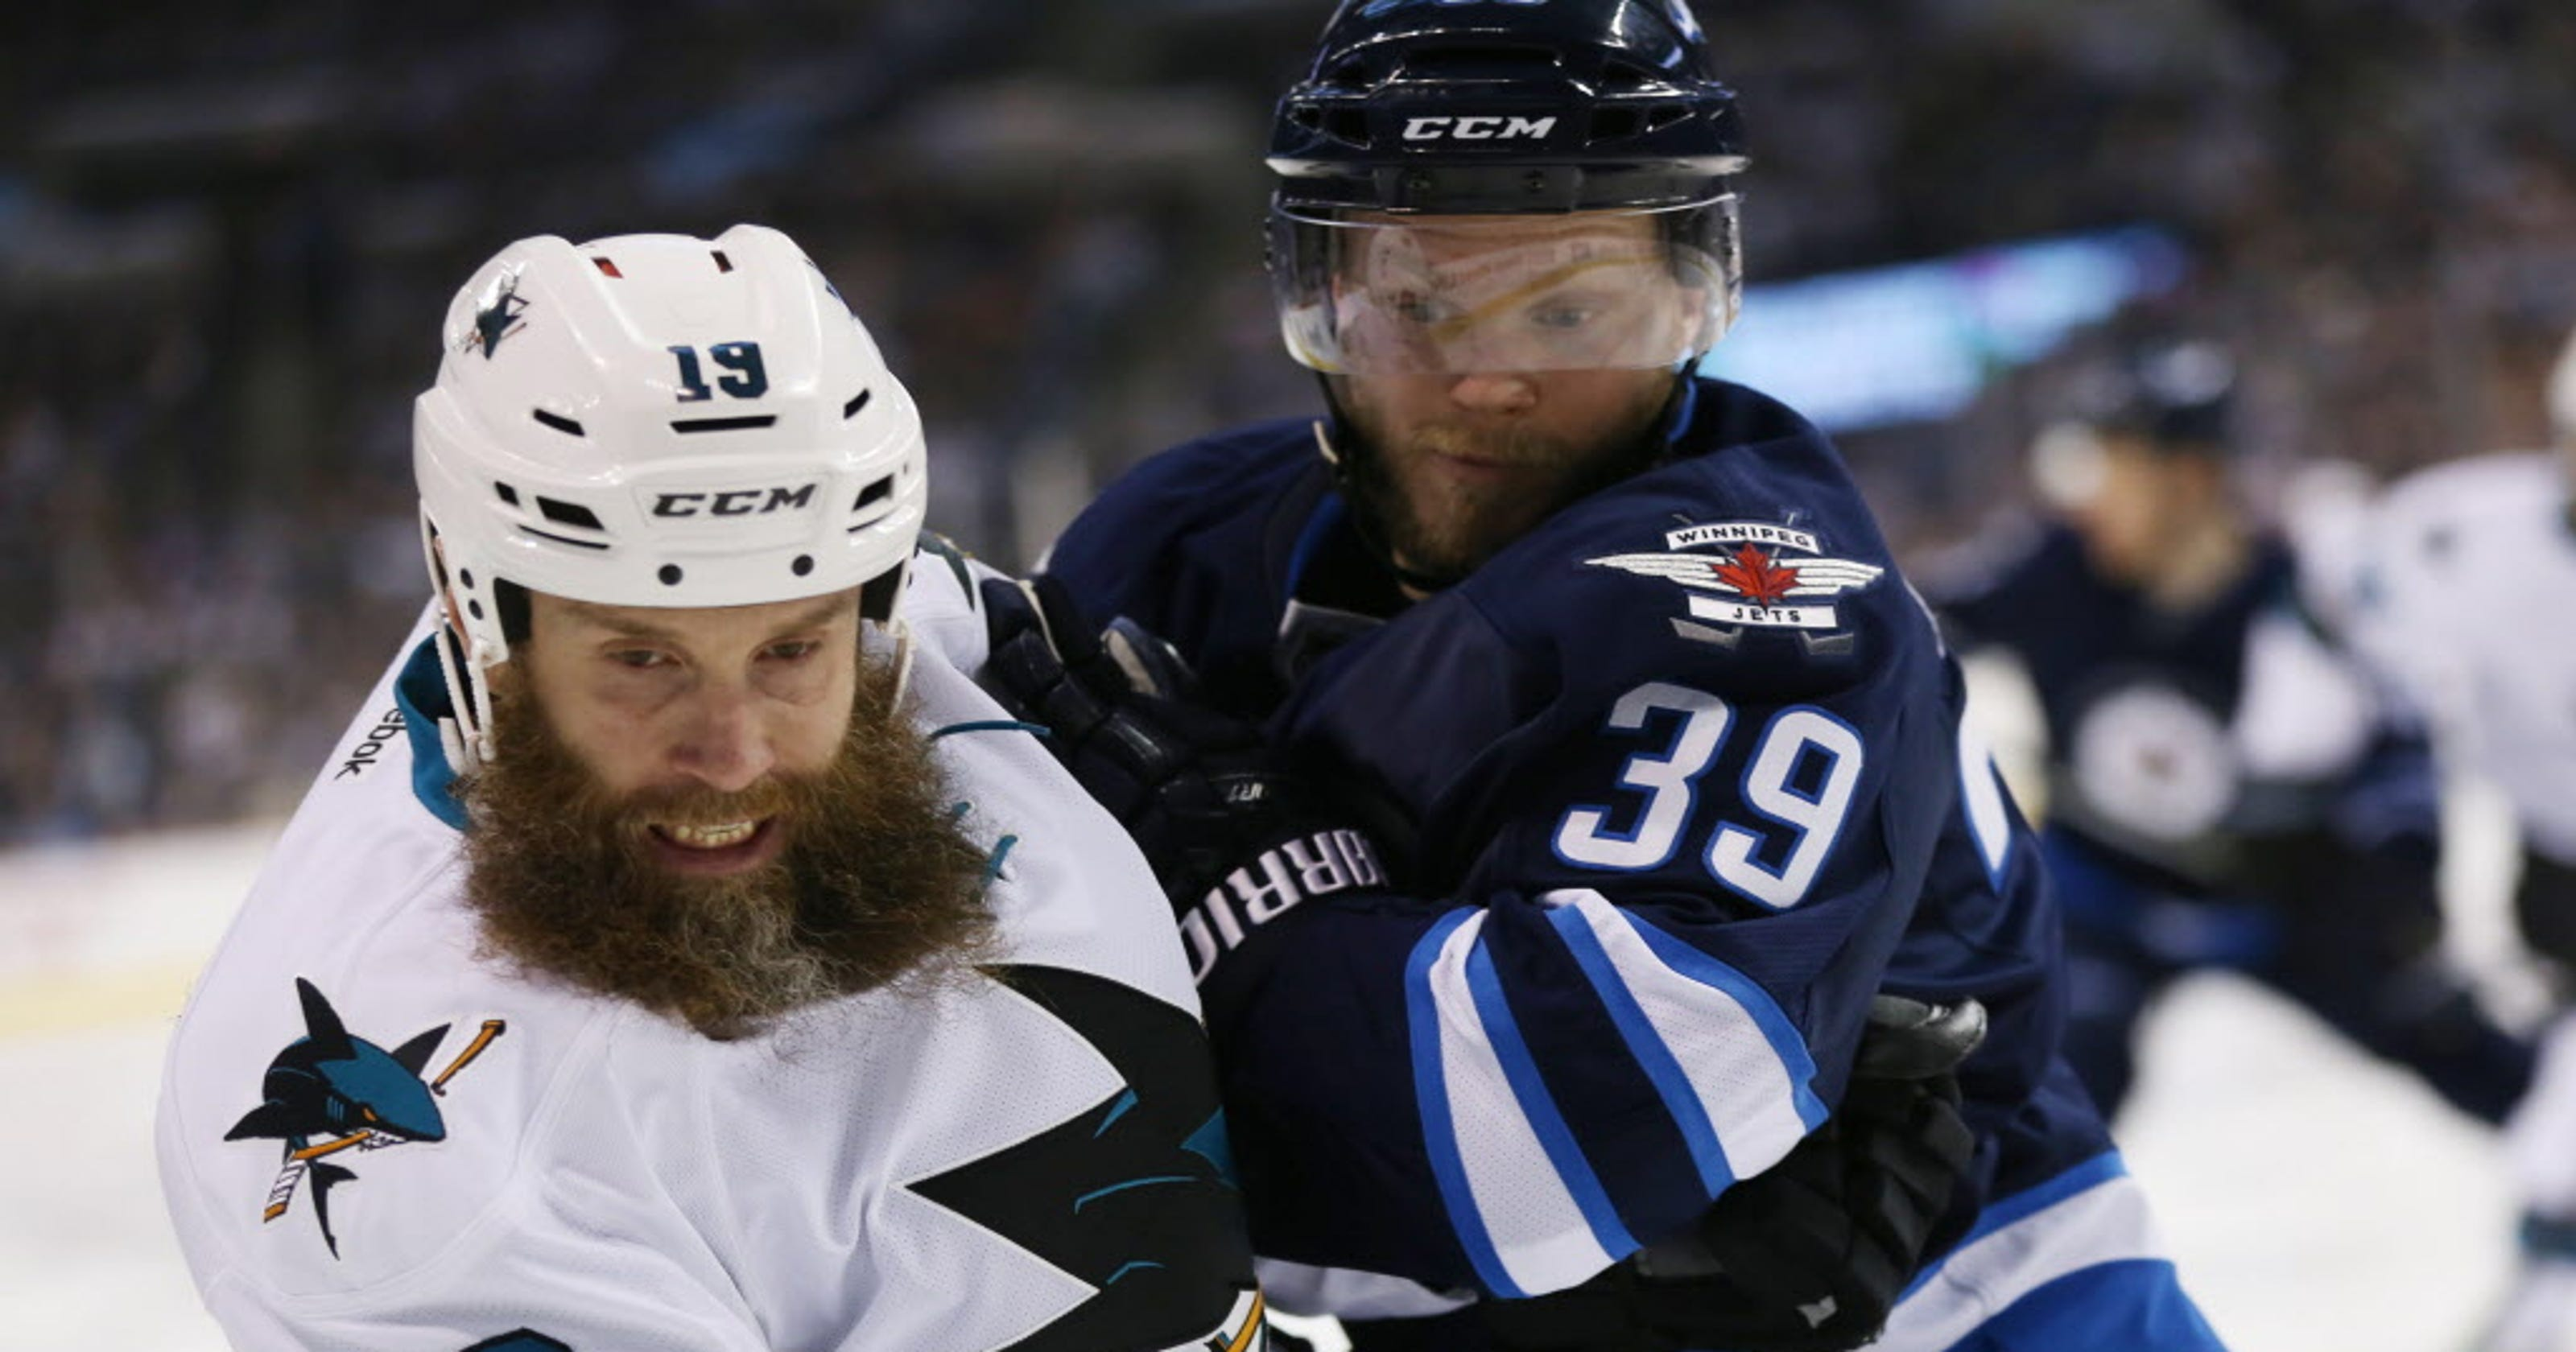 Joe Thornton becomes 13th player to record 1,000 assists